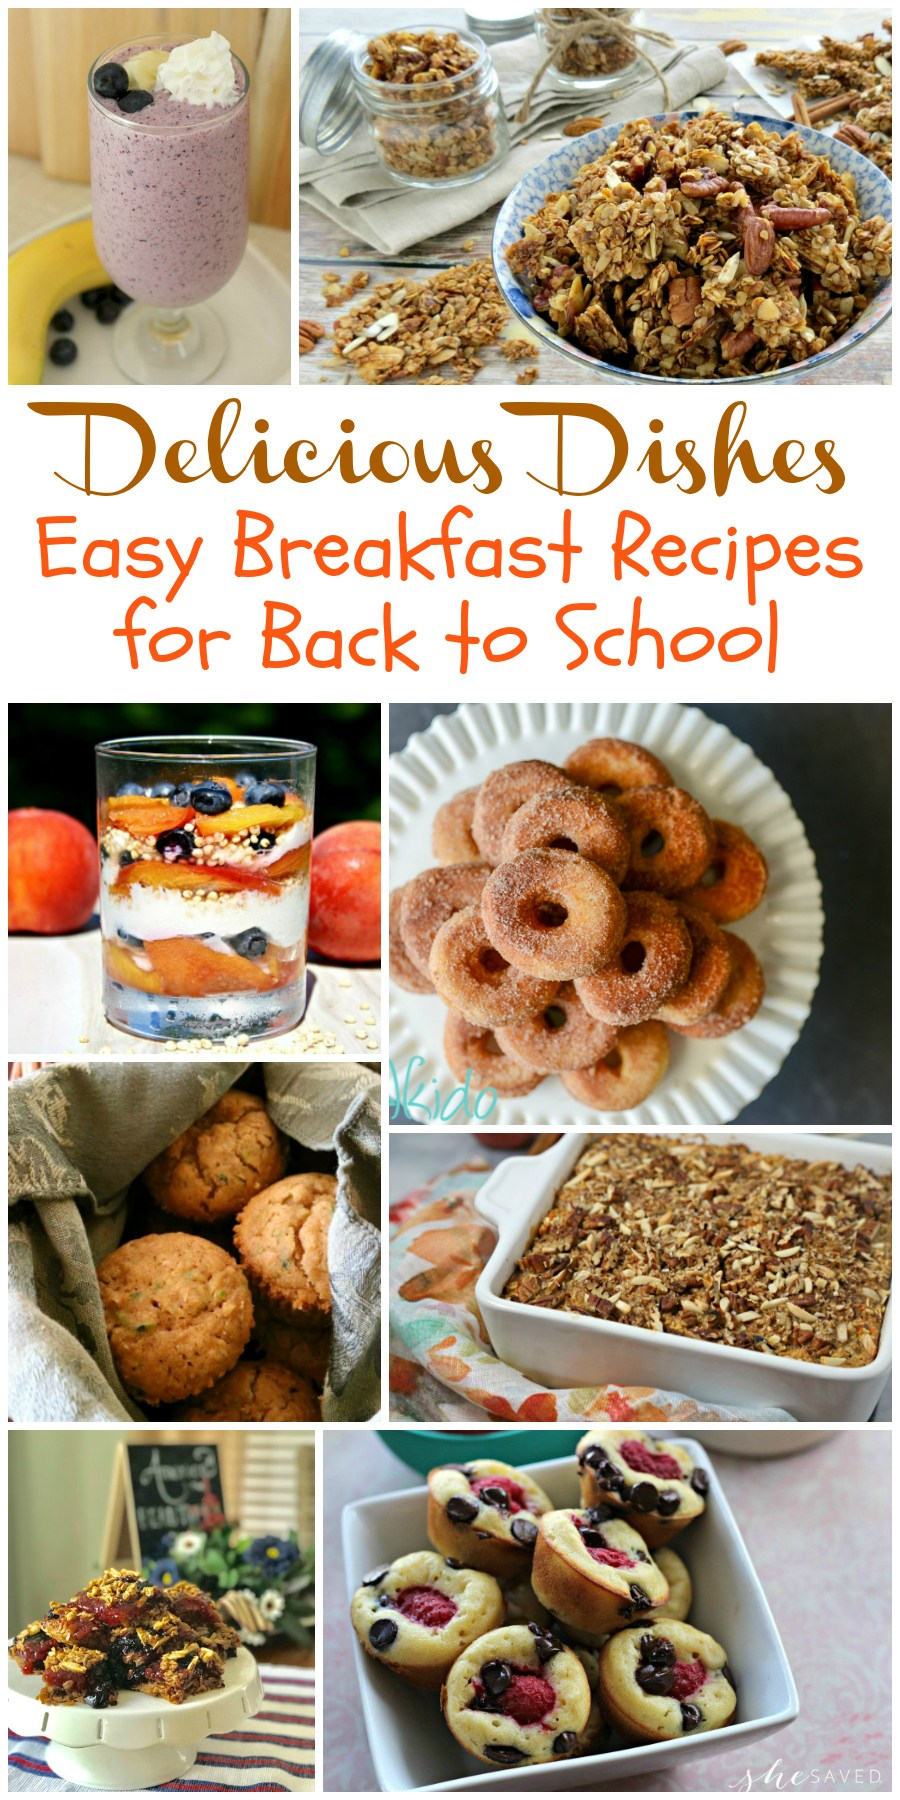 You will love these easy breakfast recipes for back to school!